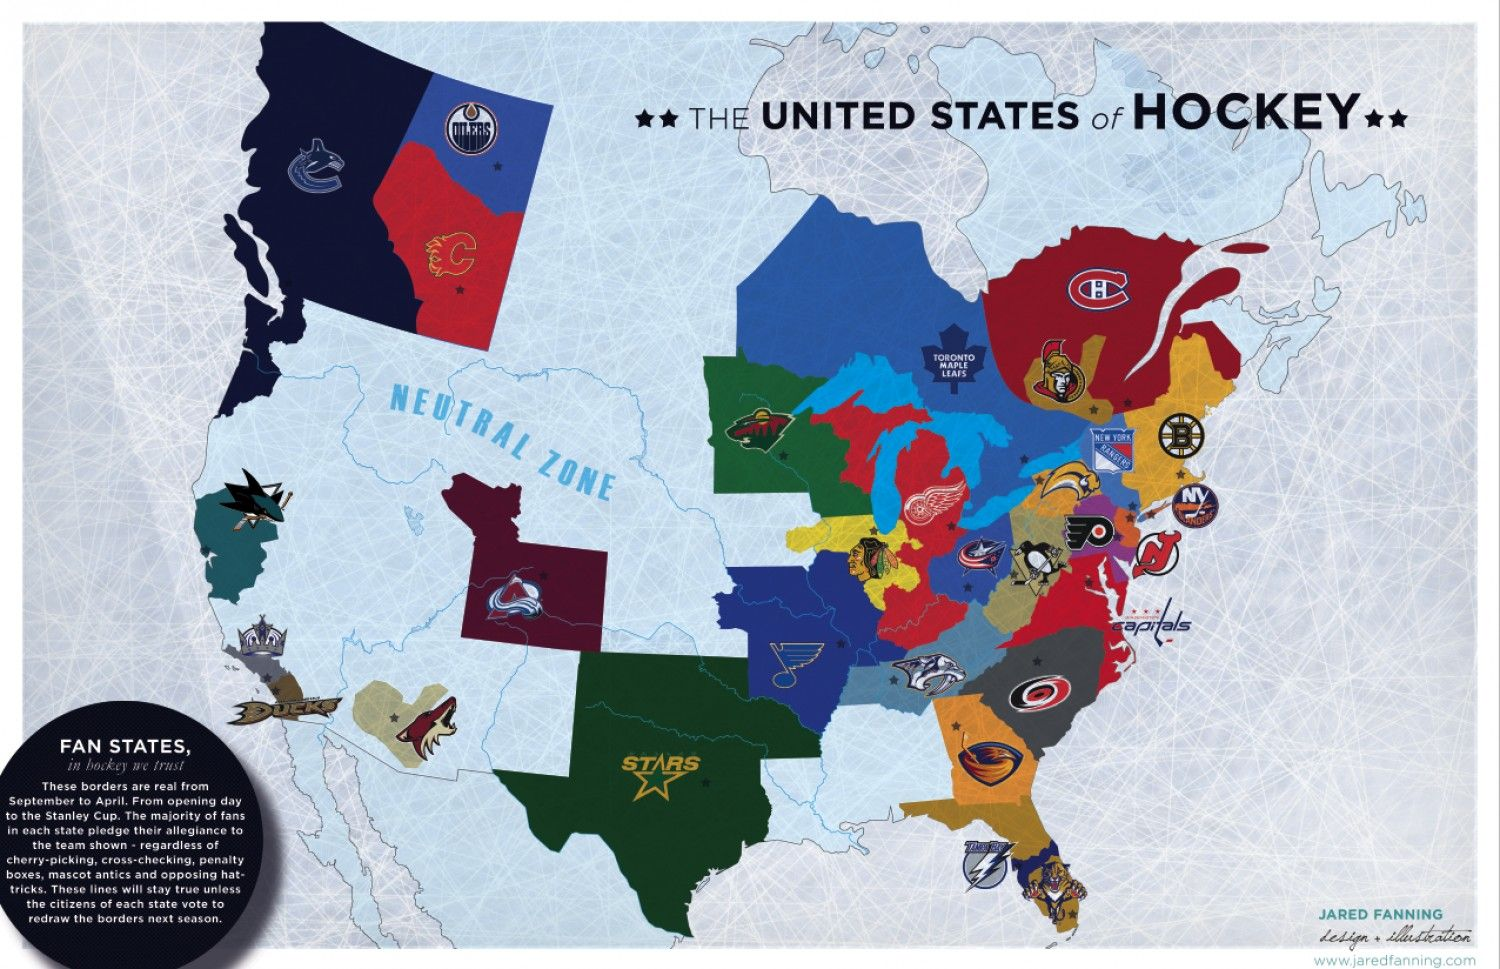 Hockey Infographic In The USA Winnipeg Jets Missing NHL - Map us stanley cup penguins sharks